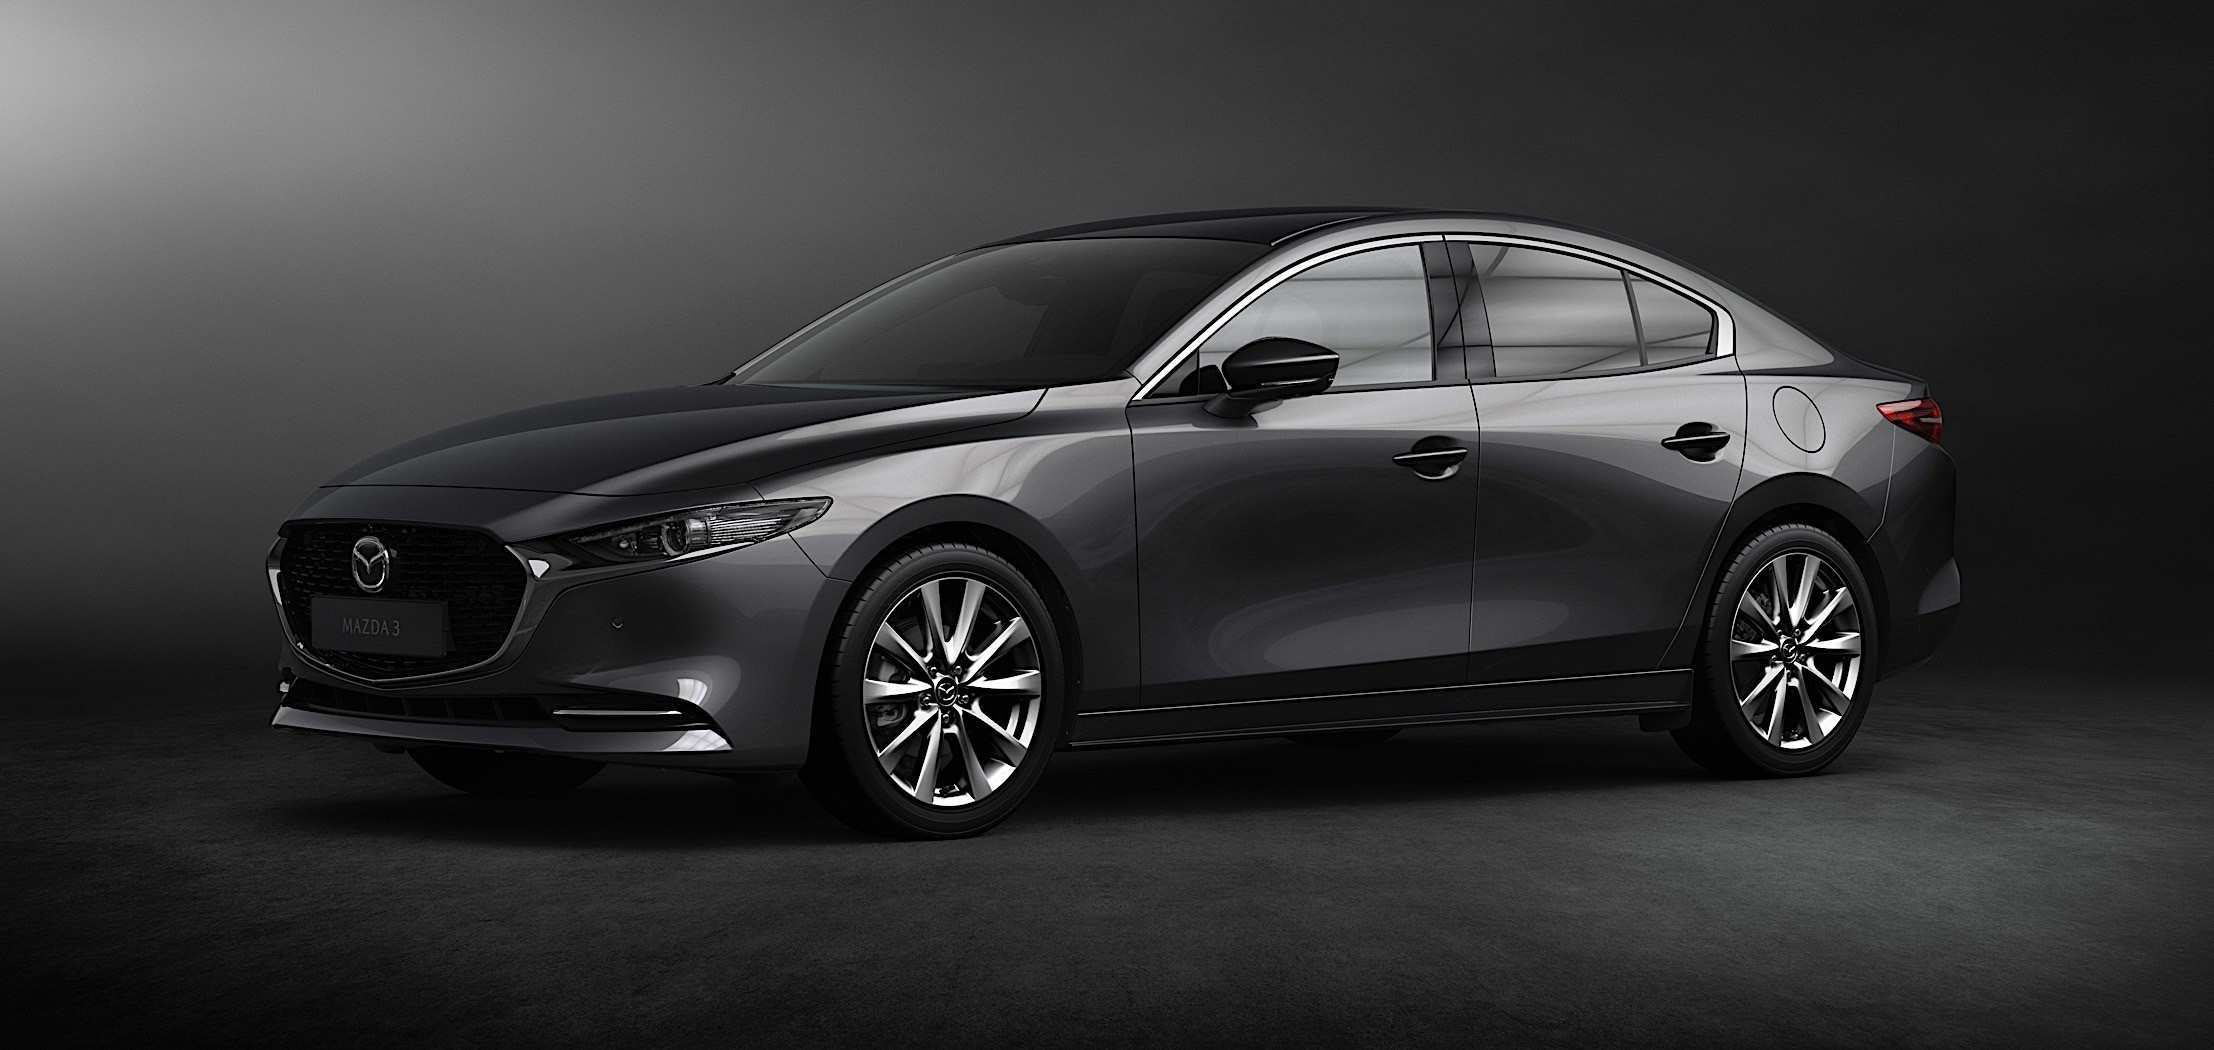 90 New Mazda Sedan 2020 Price and Review by Mazda Sedan 2020